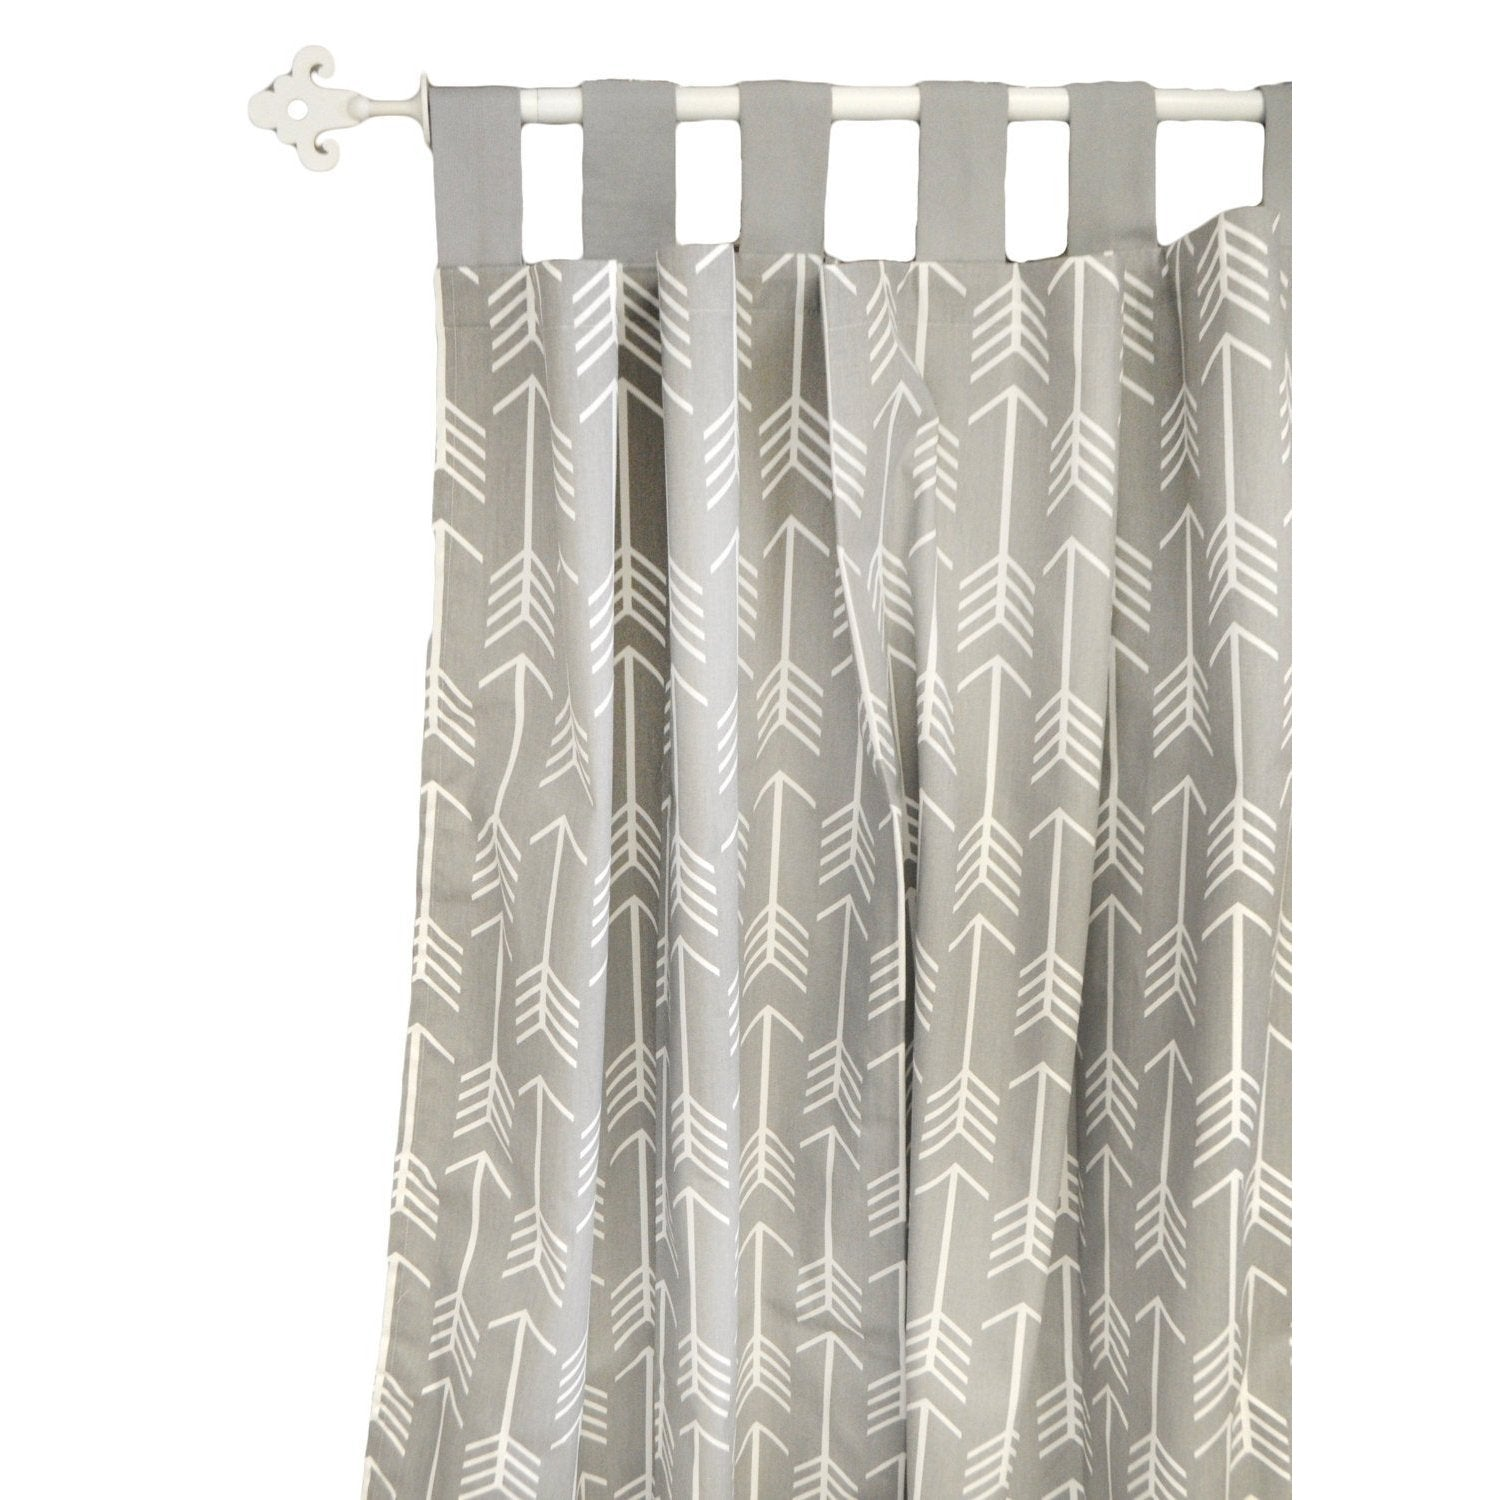 Curtain Panels | Gray Arrow Wanderlust in Gray-Curtain Panels-Jack and Jill Boutique